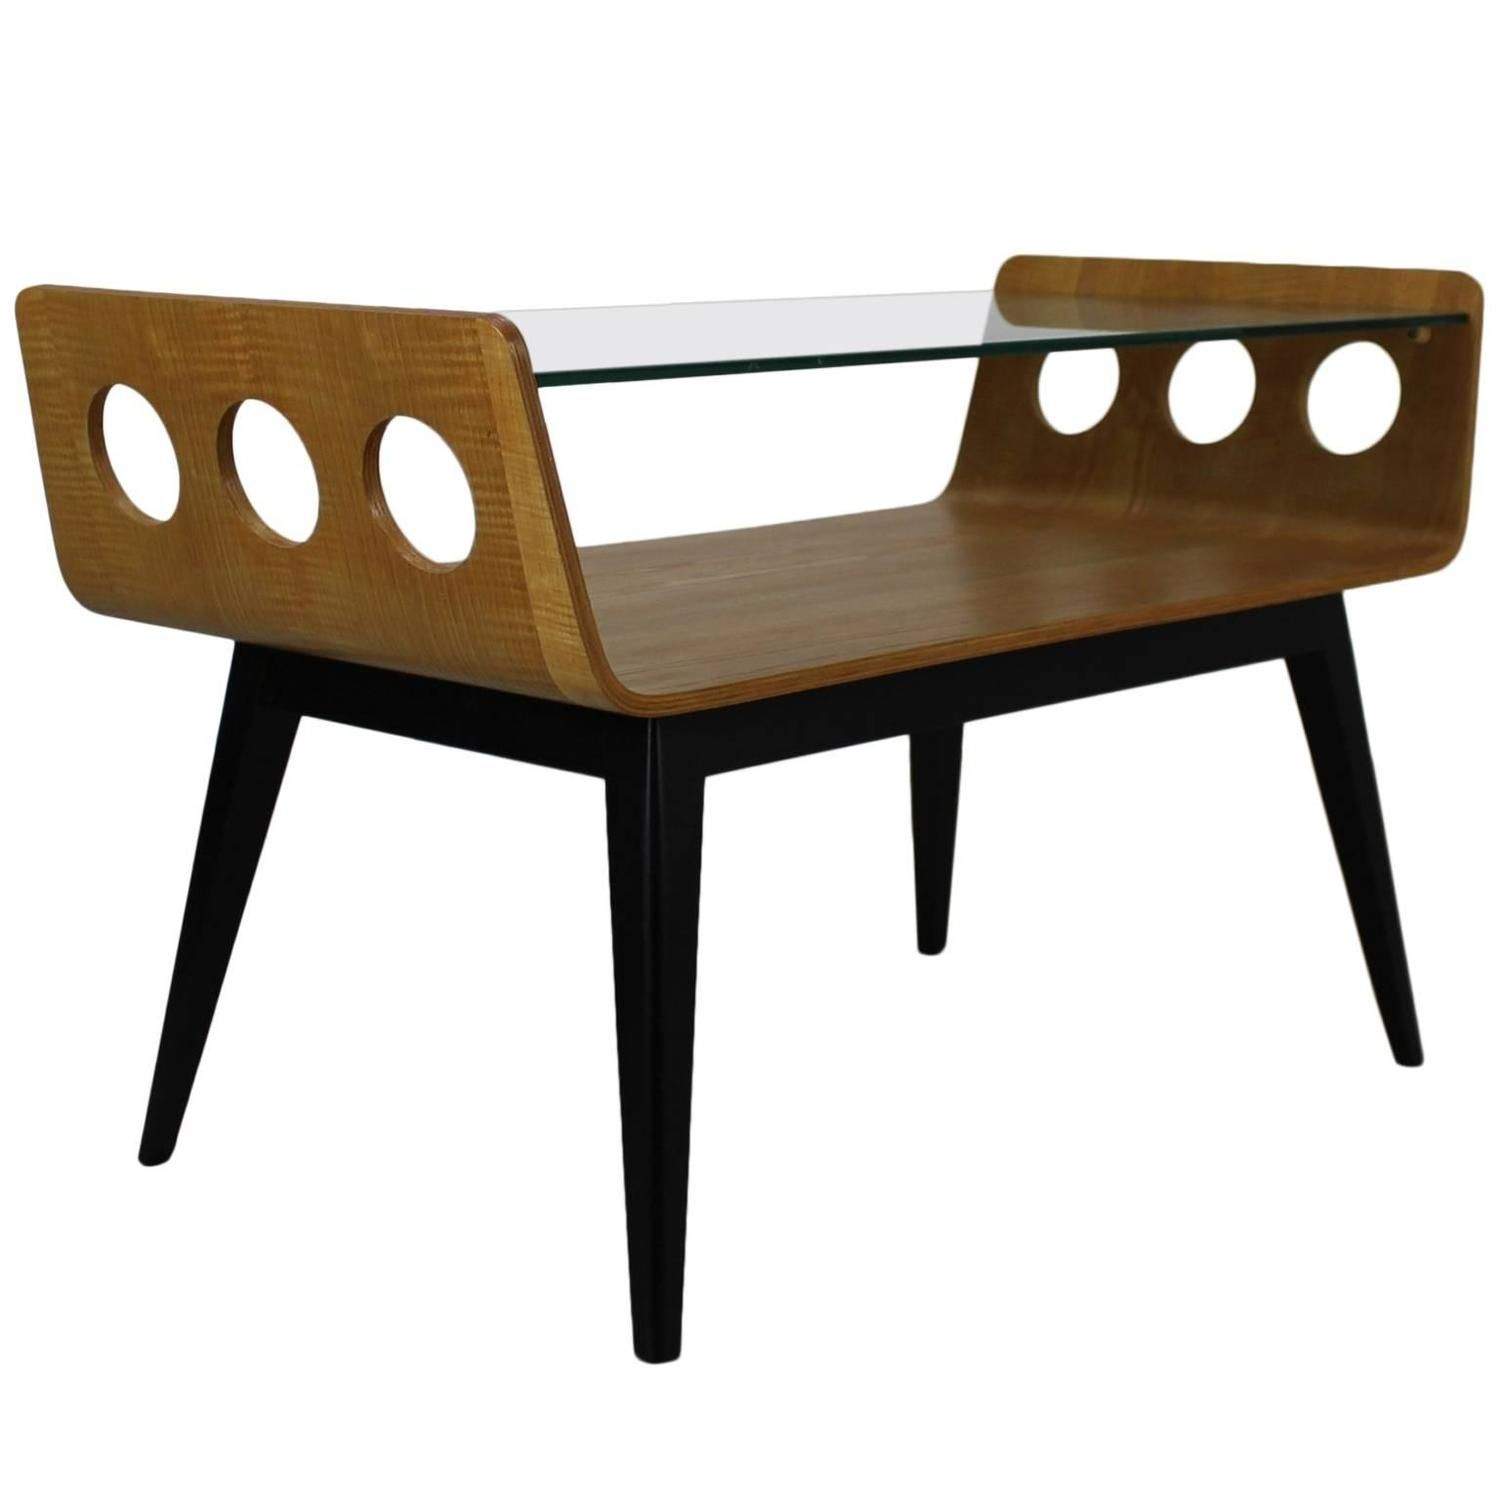 Dutch design 1950s bentwood coffee table with glass top 1950s dutch design 1950s bentwood coffee table with glass top geotapseo Gallery